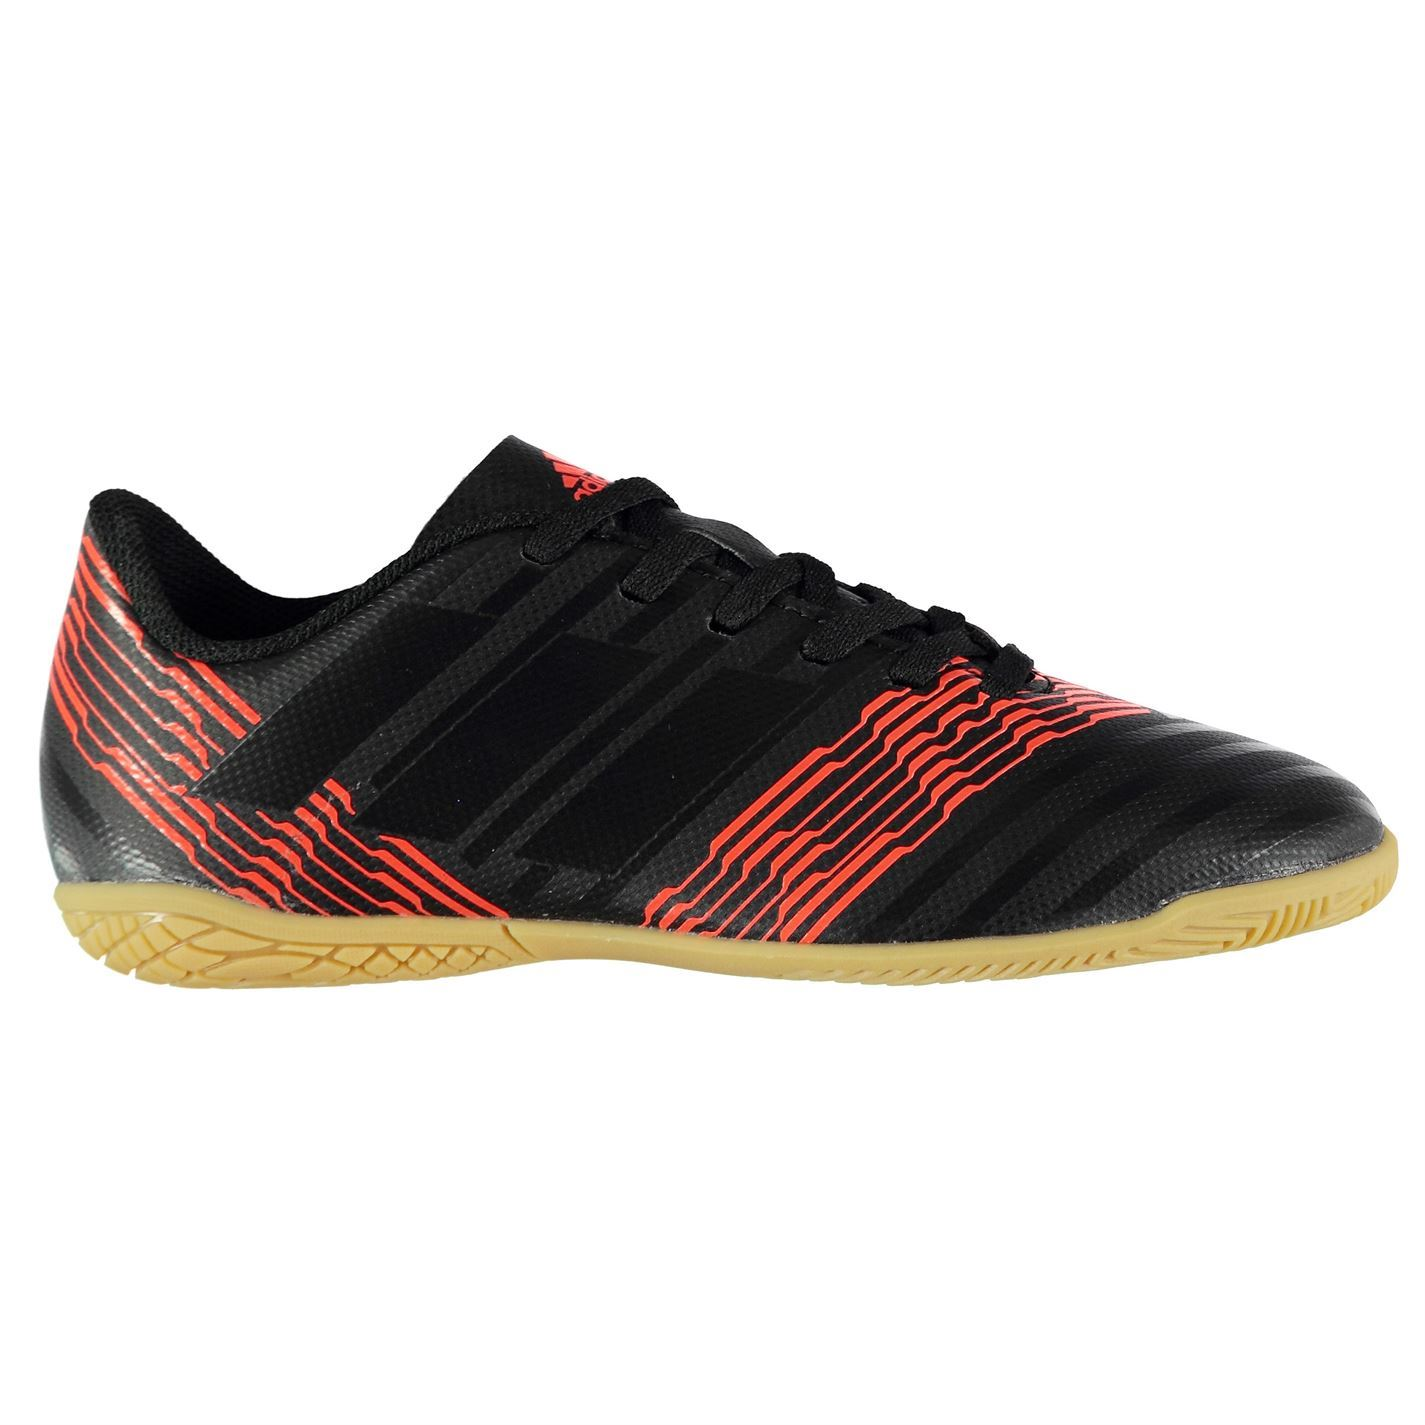 013e1a8e1e1 ... adidas Nemeziz Tango 17.4 Indoor Football Trainers Childs Black Soccer  Shoes ...